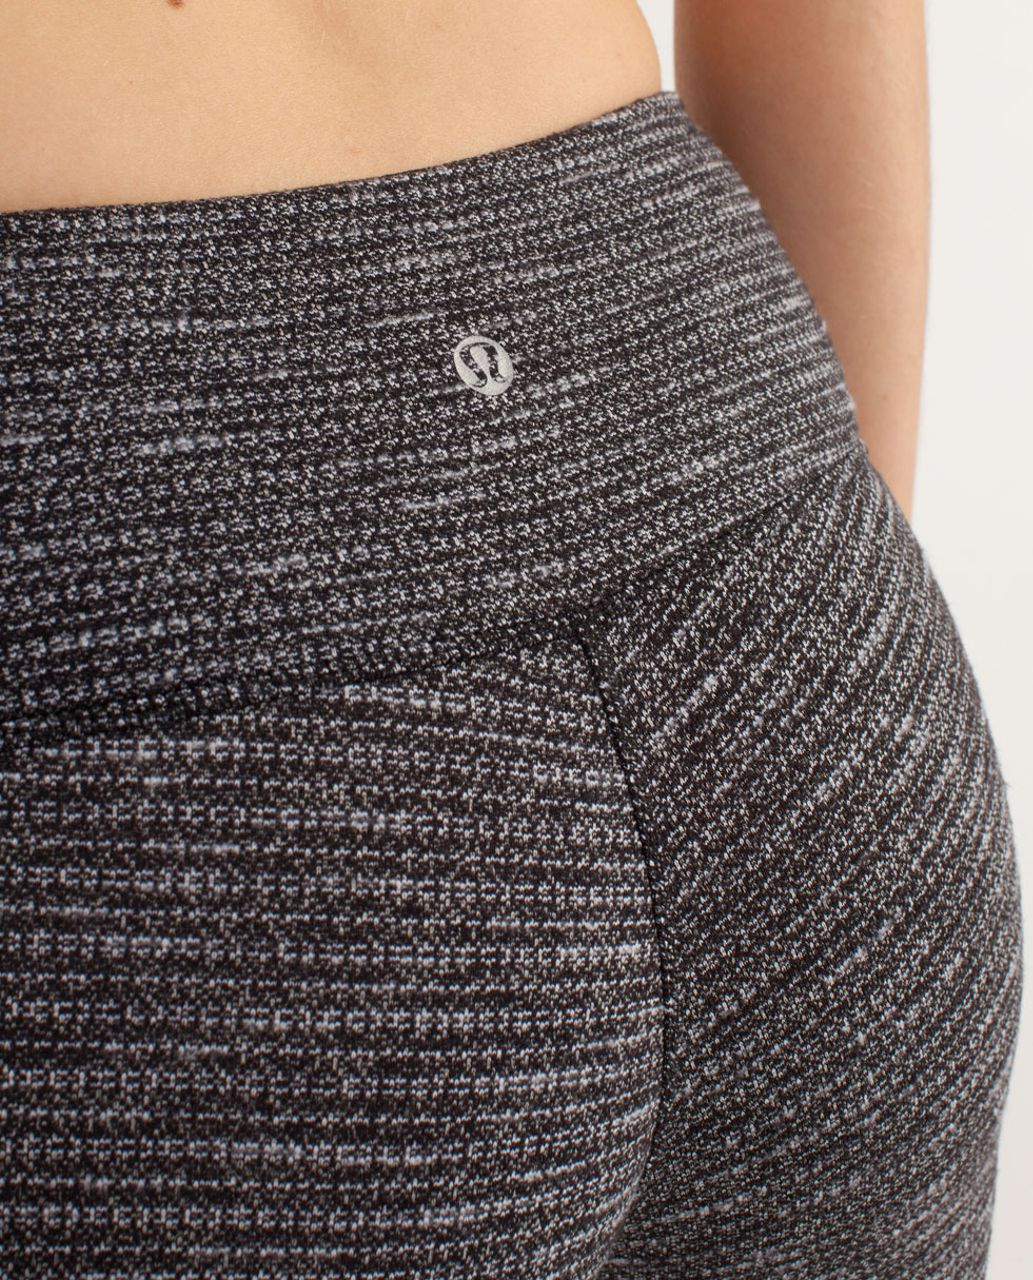 Lululemon Wunder Under Crop - Coco Pique Black / Black